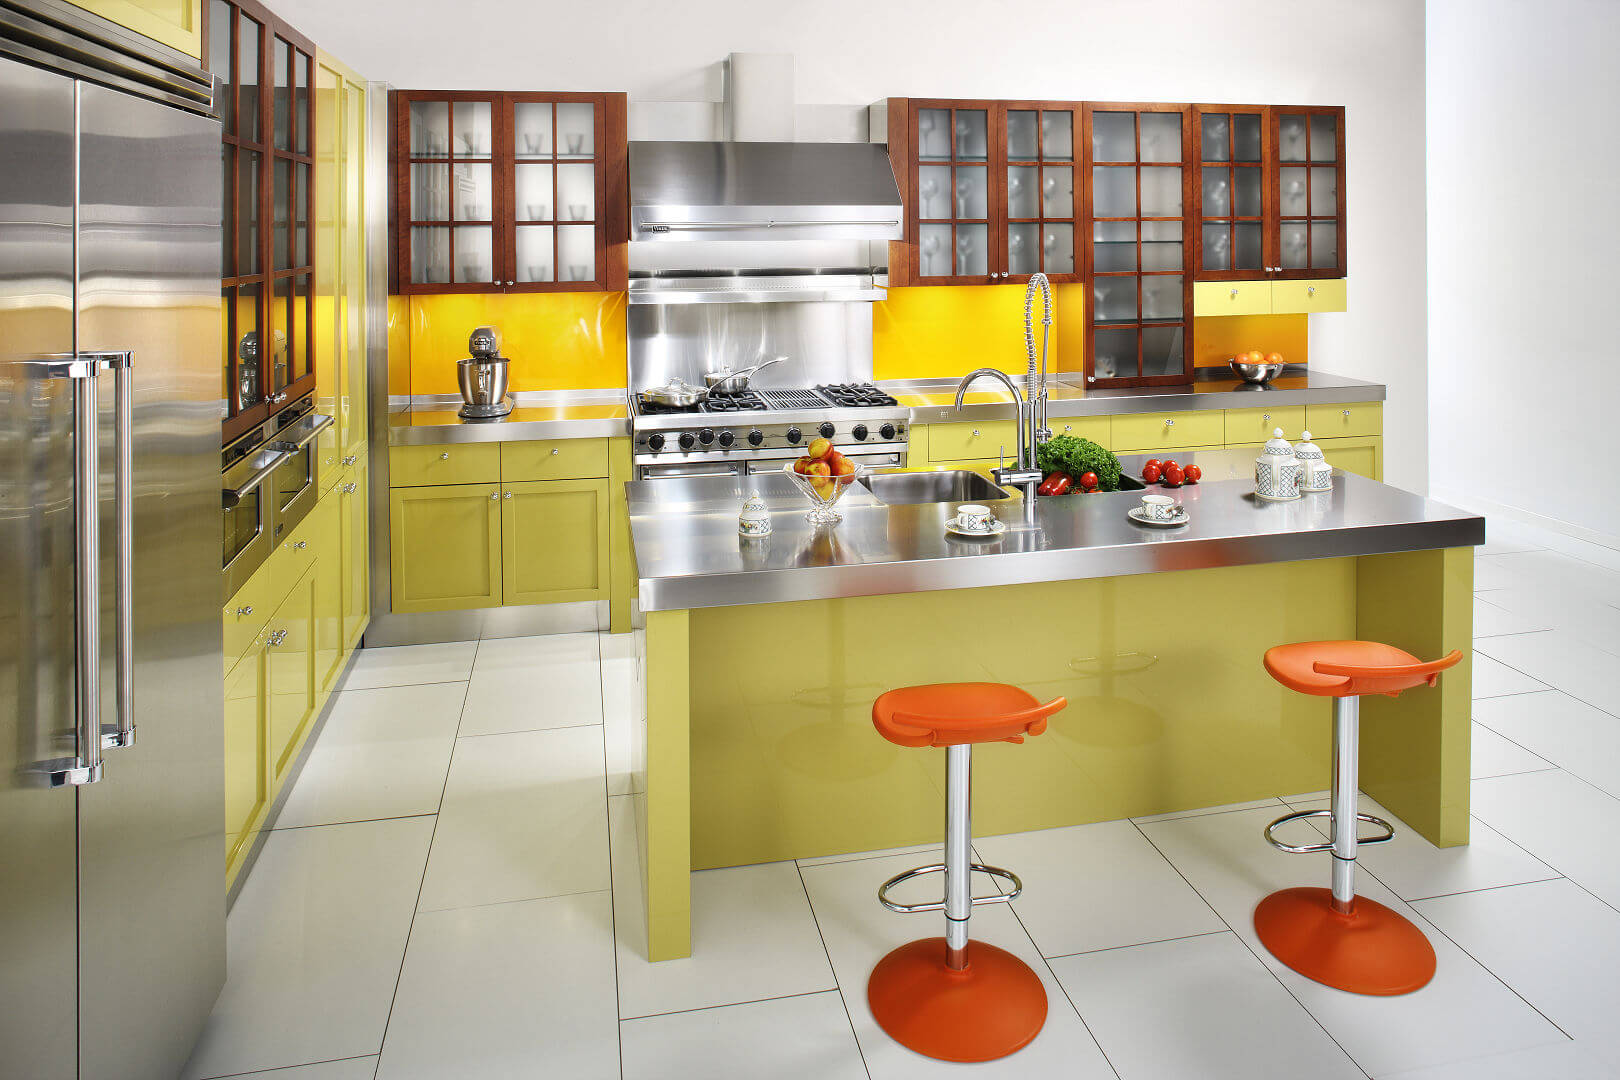 Arca Cucine Italy - Domestic stainless steel kitchens - 14 - Cambridge - Isola